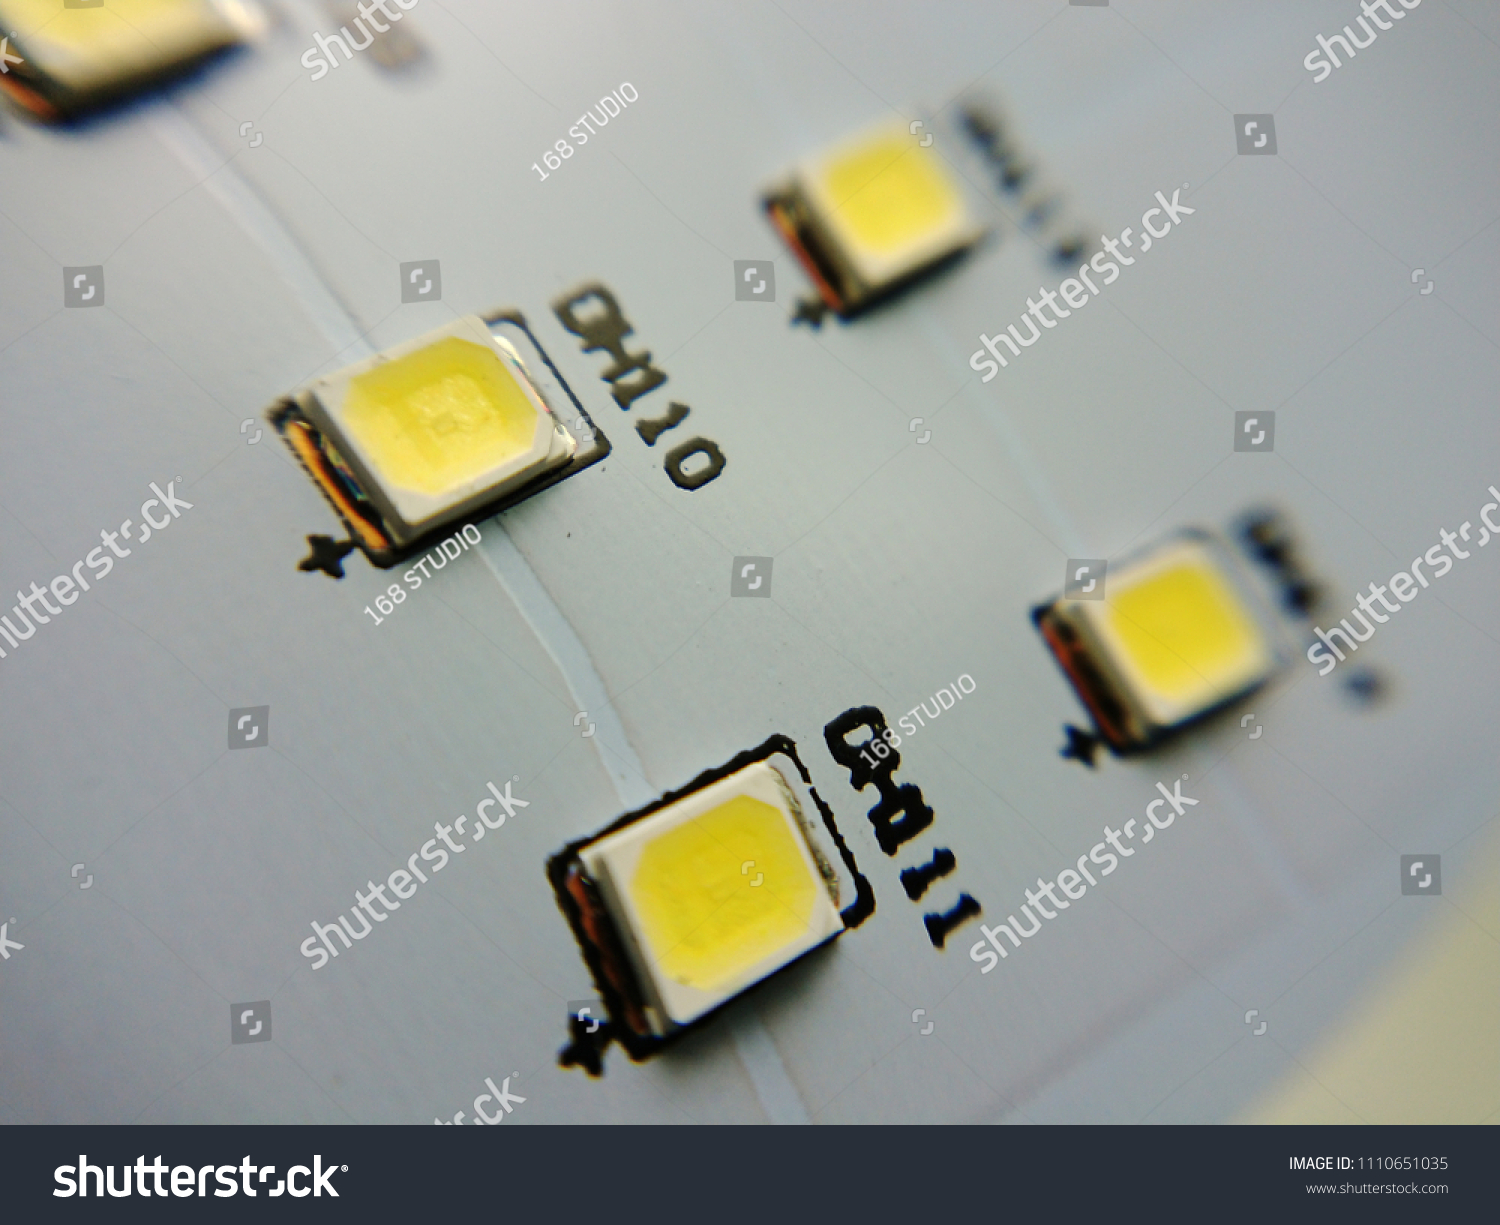 Close Pcb Board Led Smd Lamp Stock Photo Edit Now 1110651035 Light Emitting Diode Electrical Circuits Up With On White Background Surface